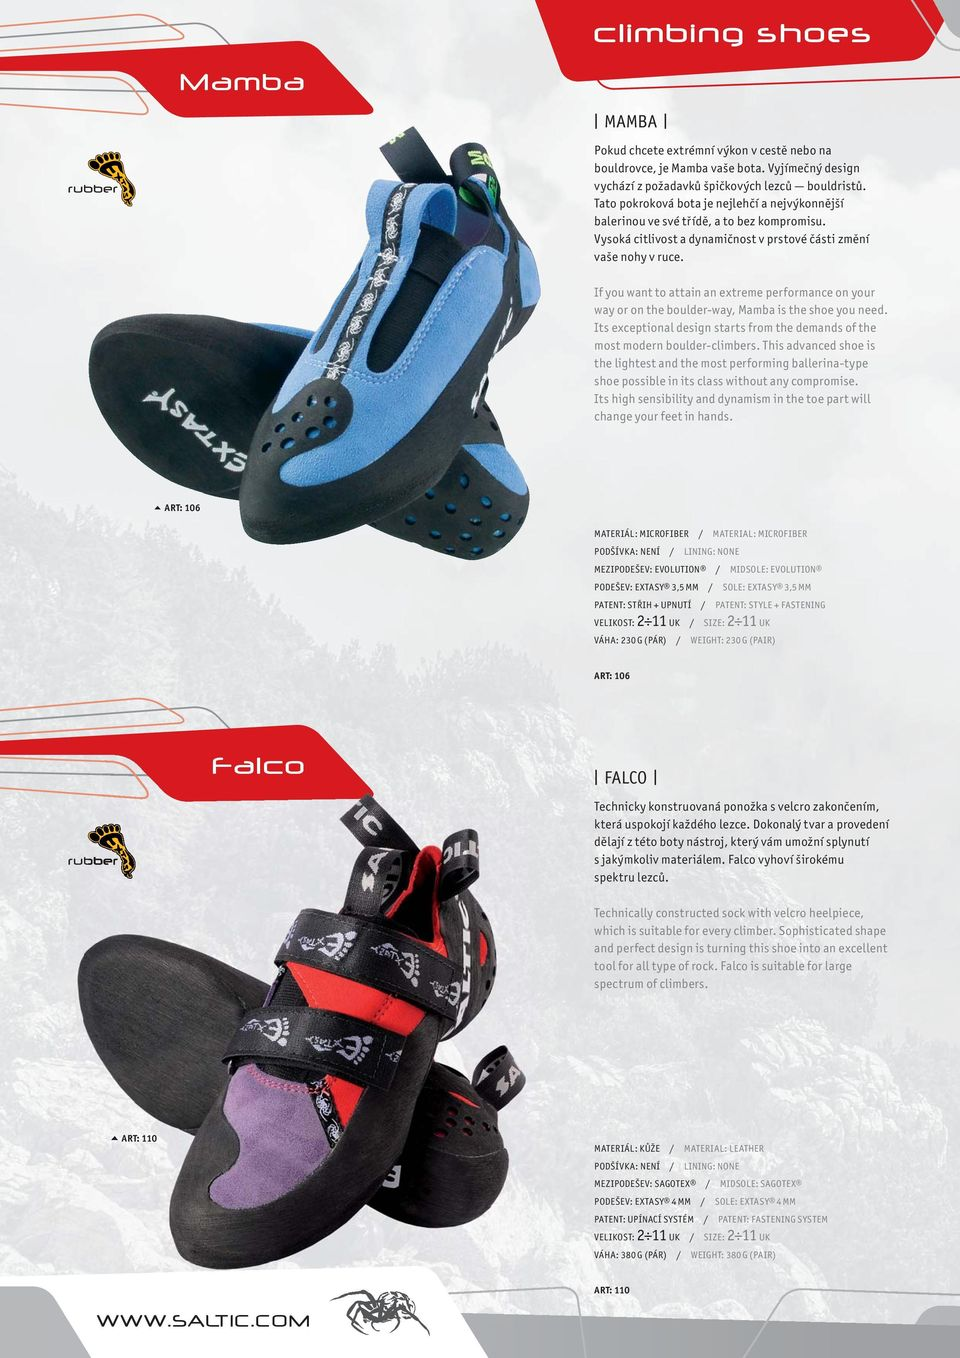 If you want to attain an extreme performance on your way or on the boulder-way, Mamba is the shoe you need. Its exceptional design starts from the demands of the most modern boulder-climbers.